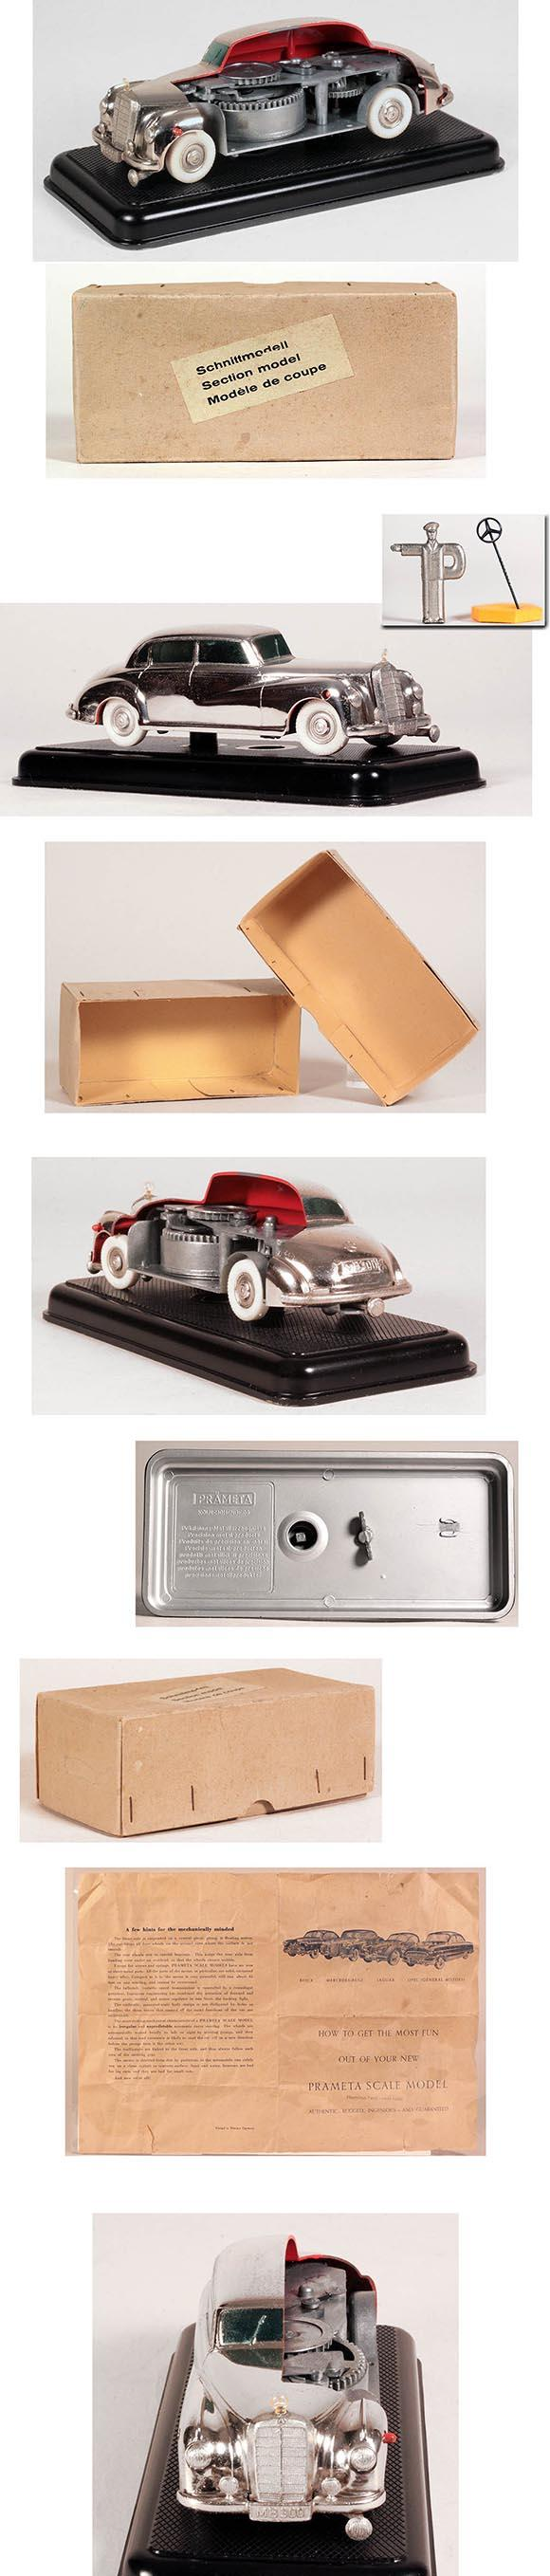 1951 Kolner (British Zone, Germany), Cut-Away Prameta Mercedes Benz 300 in Original Box